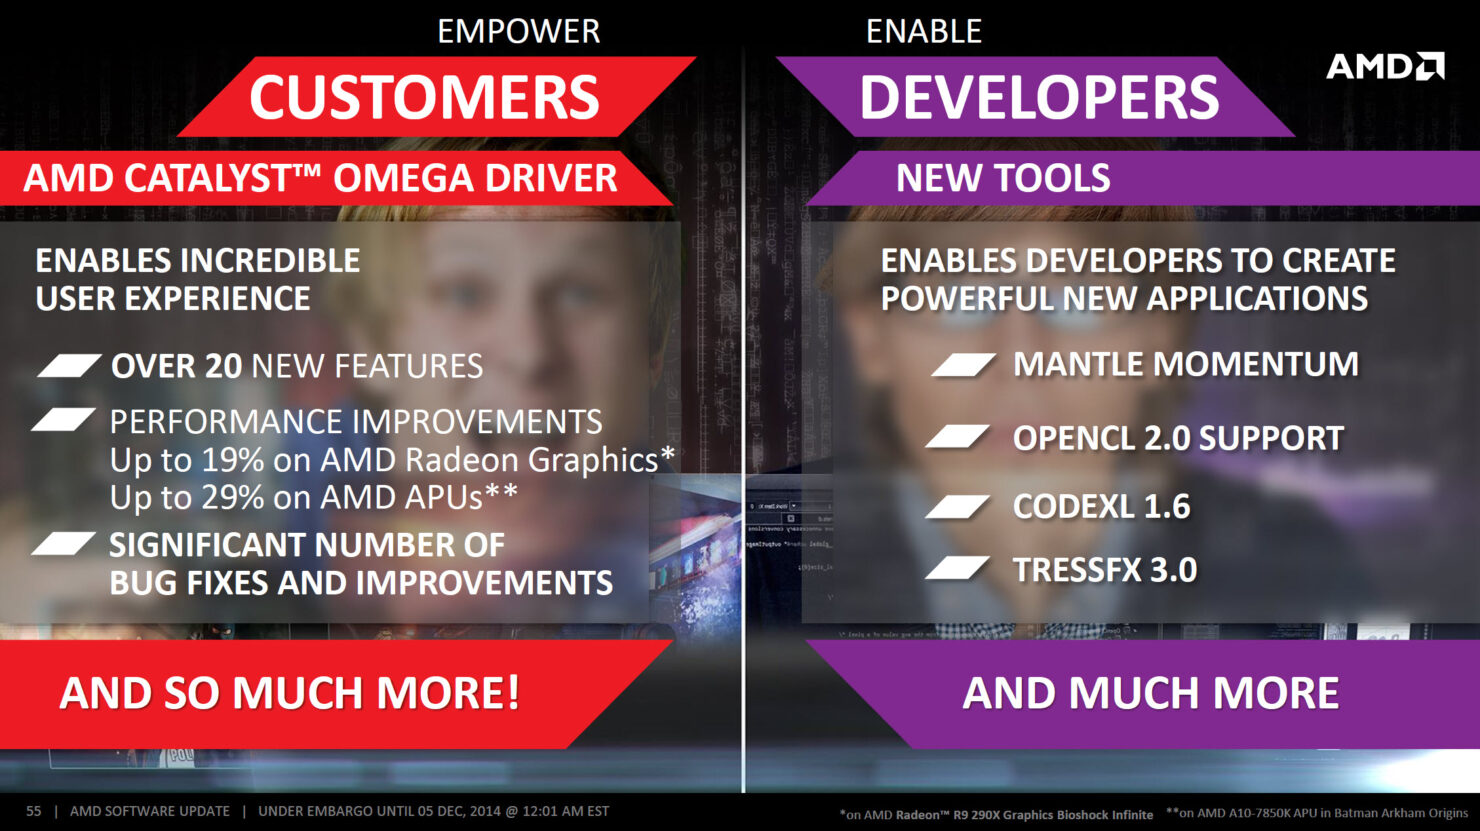 amd-catalyst-omega-driver-14-50_conclude